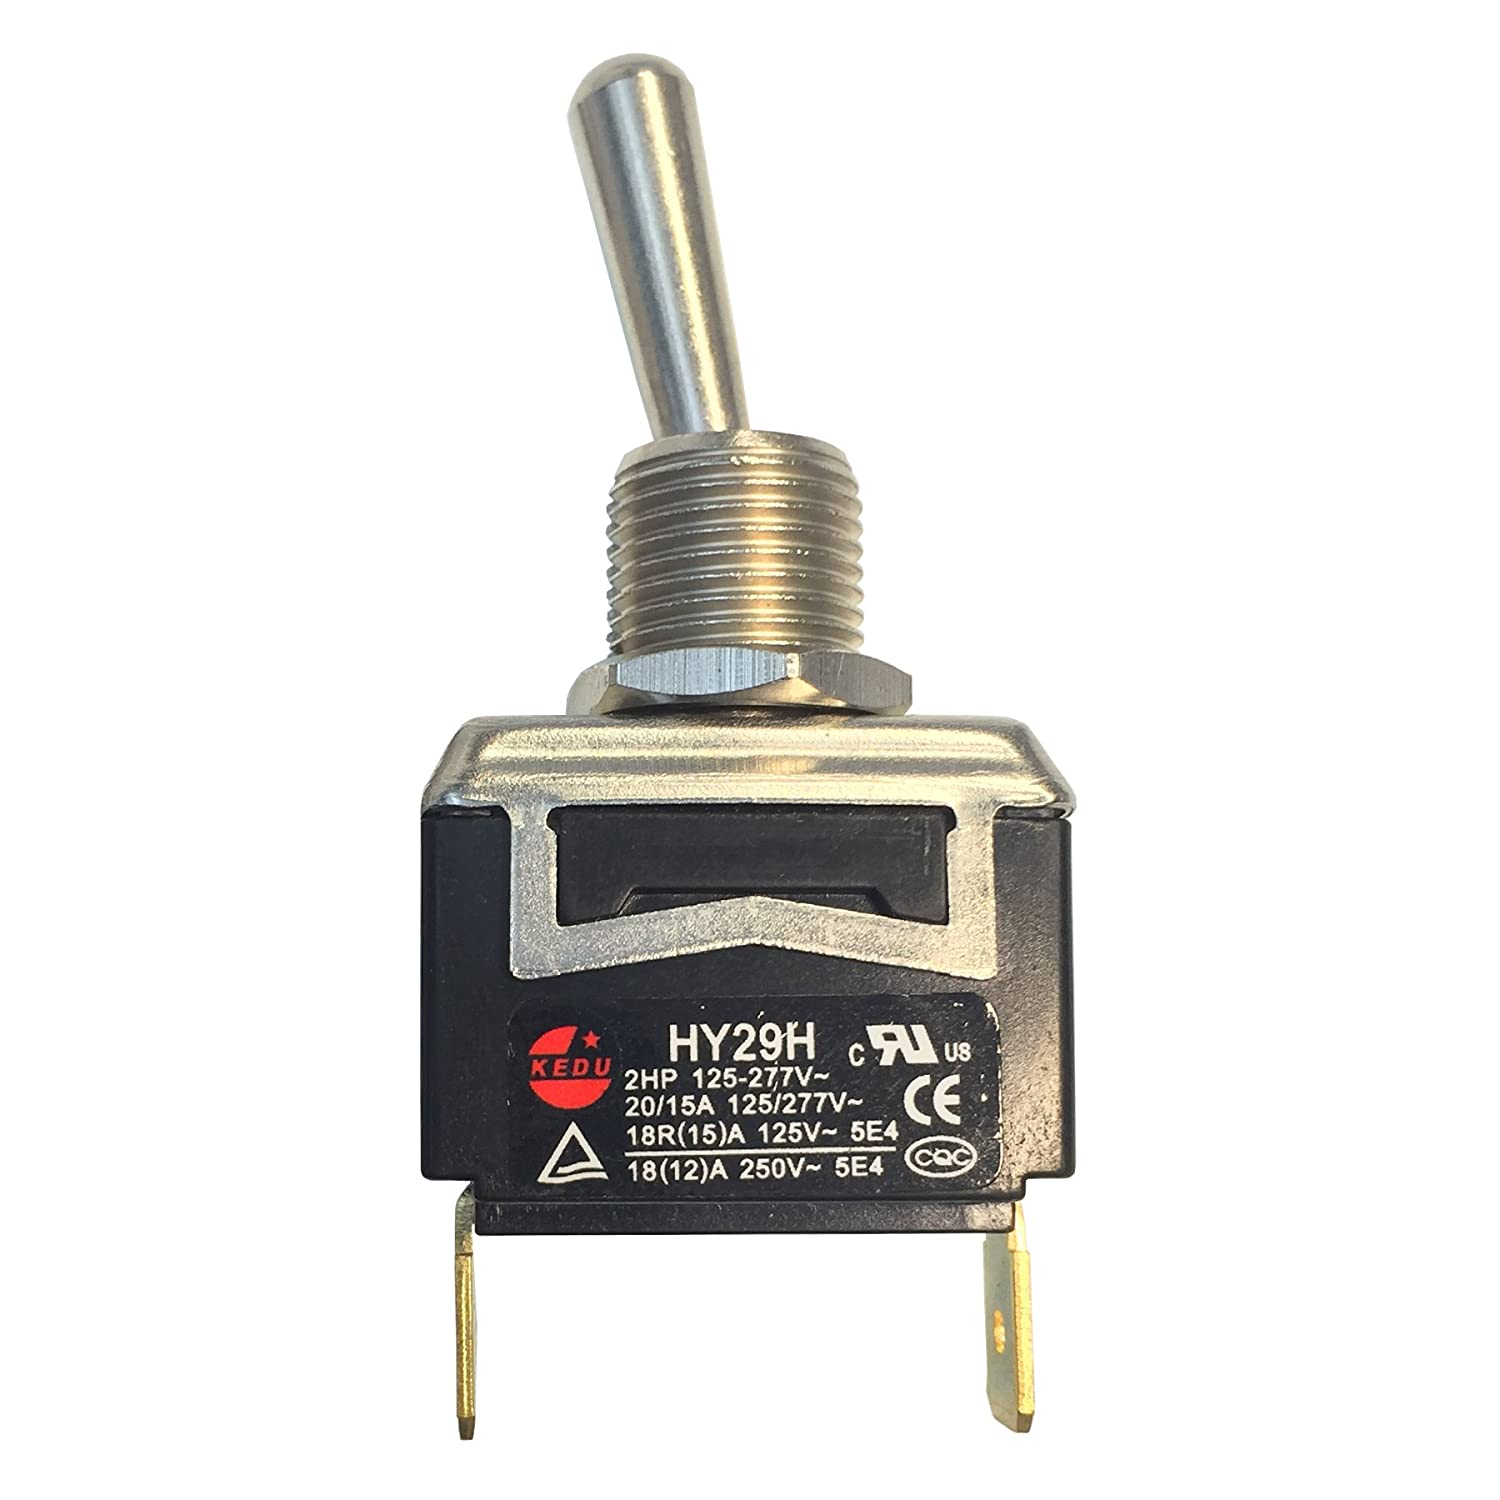 71iZJrfKZsL._SL1500_ gardner bender gsw 14 toggle switch, dpst, on off automotive Toggle Switch E170607 at gsmportal.co